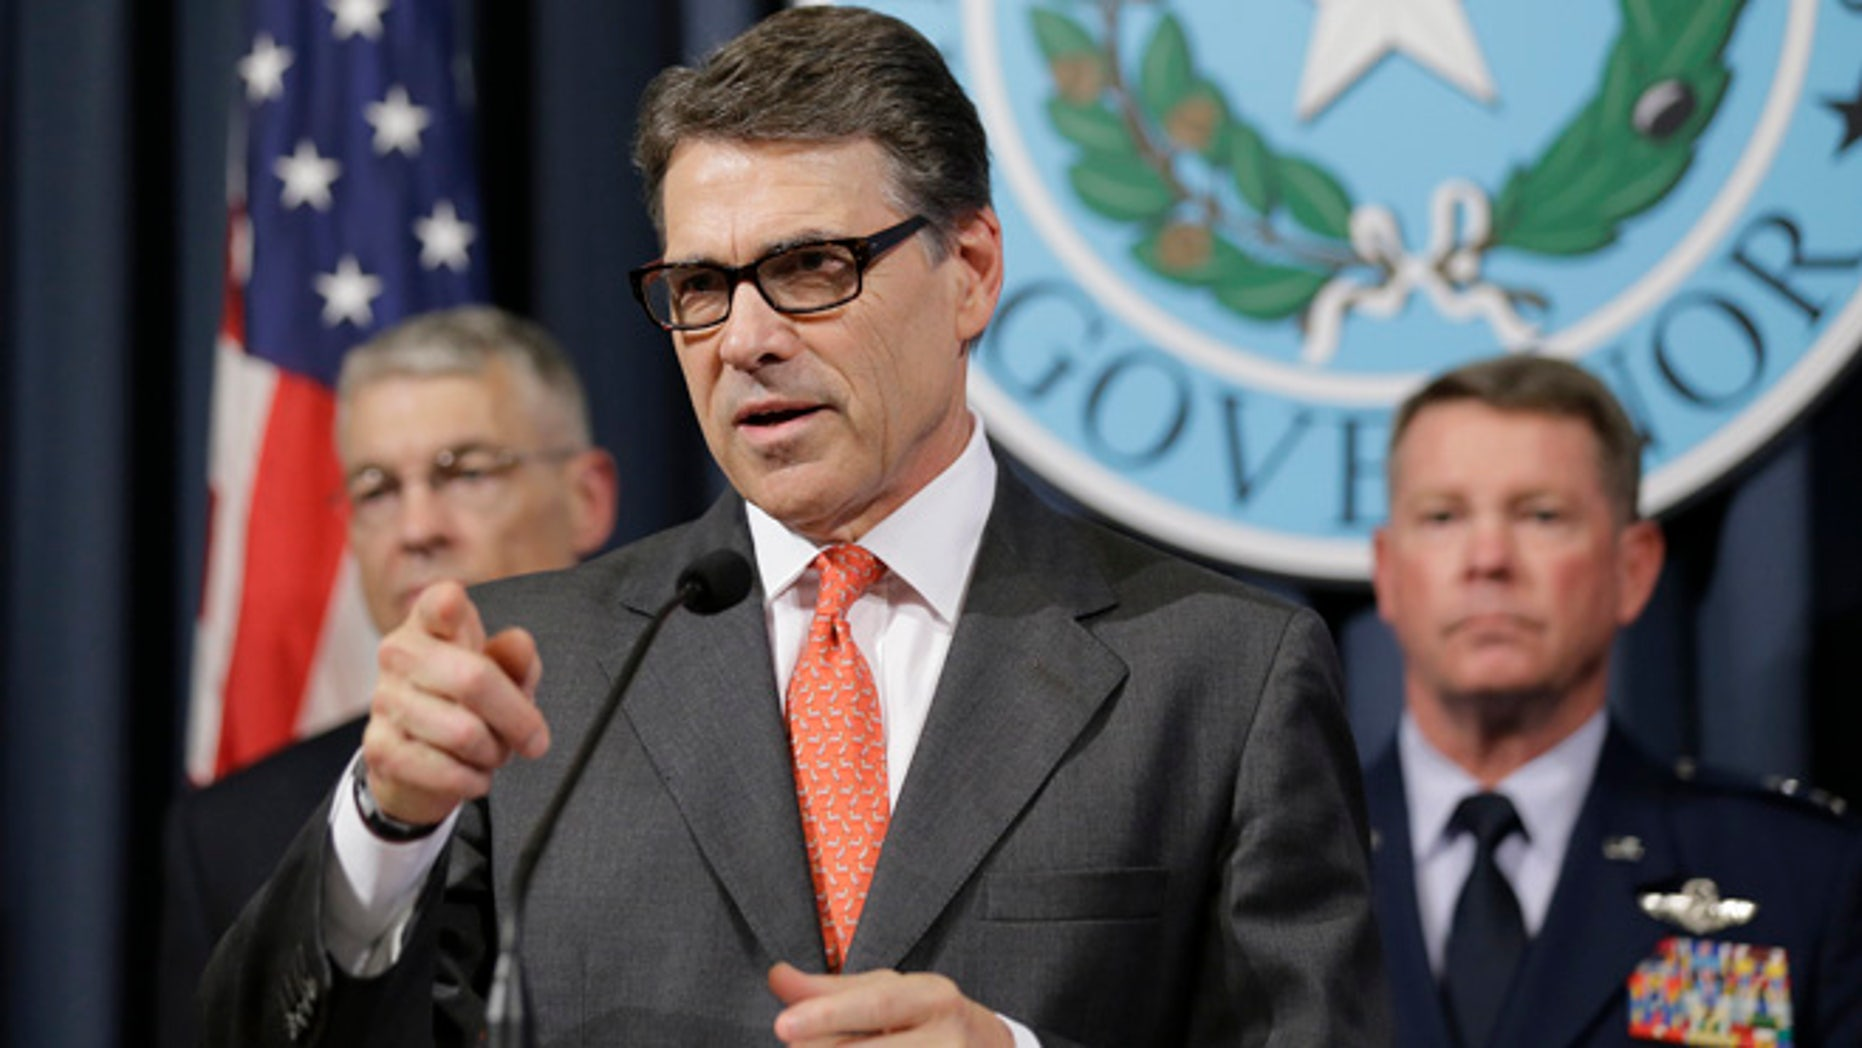 July 21, 2014: Gov. Rick Perry, center, speaks during a news conference in the Governor's press room in Austin, Texas.